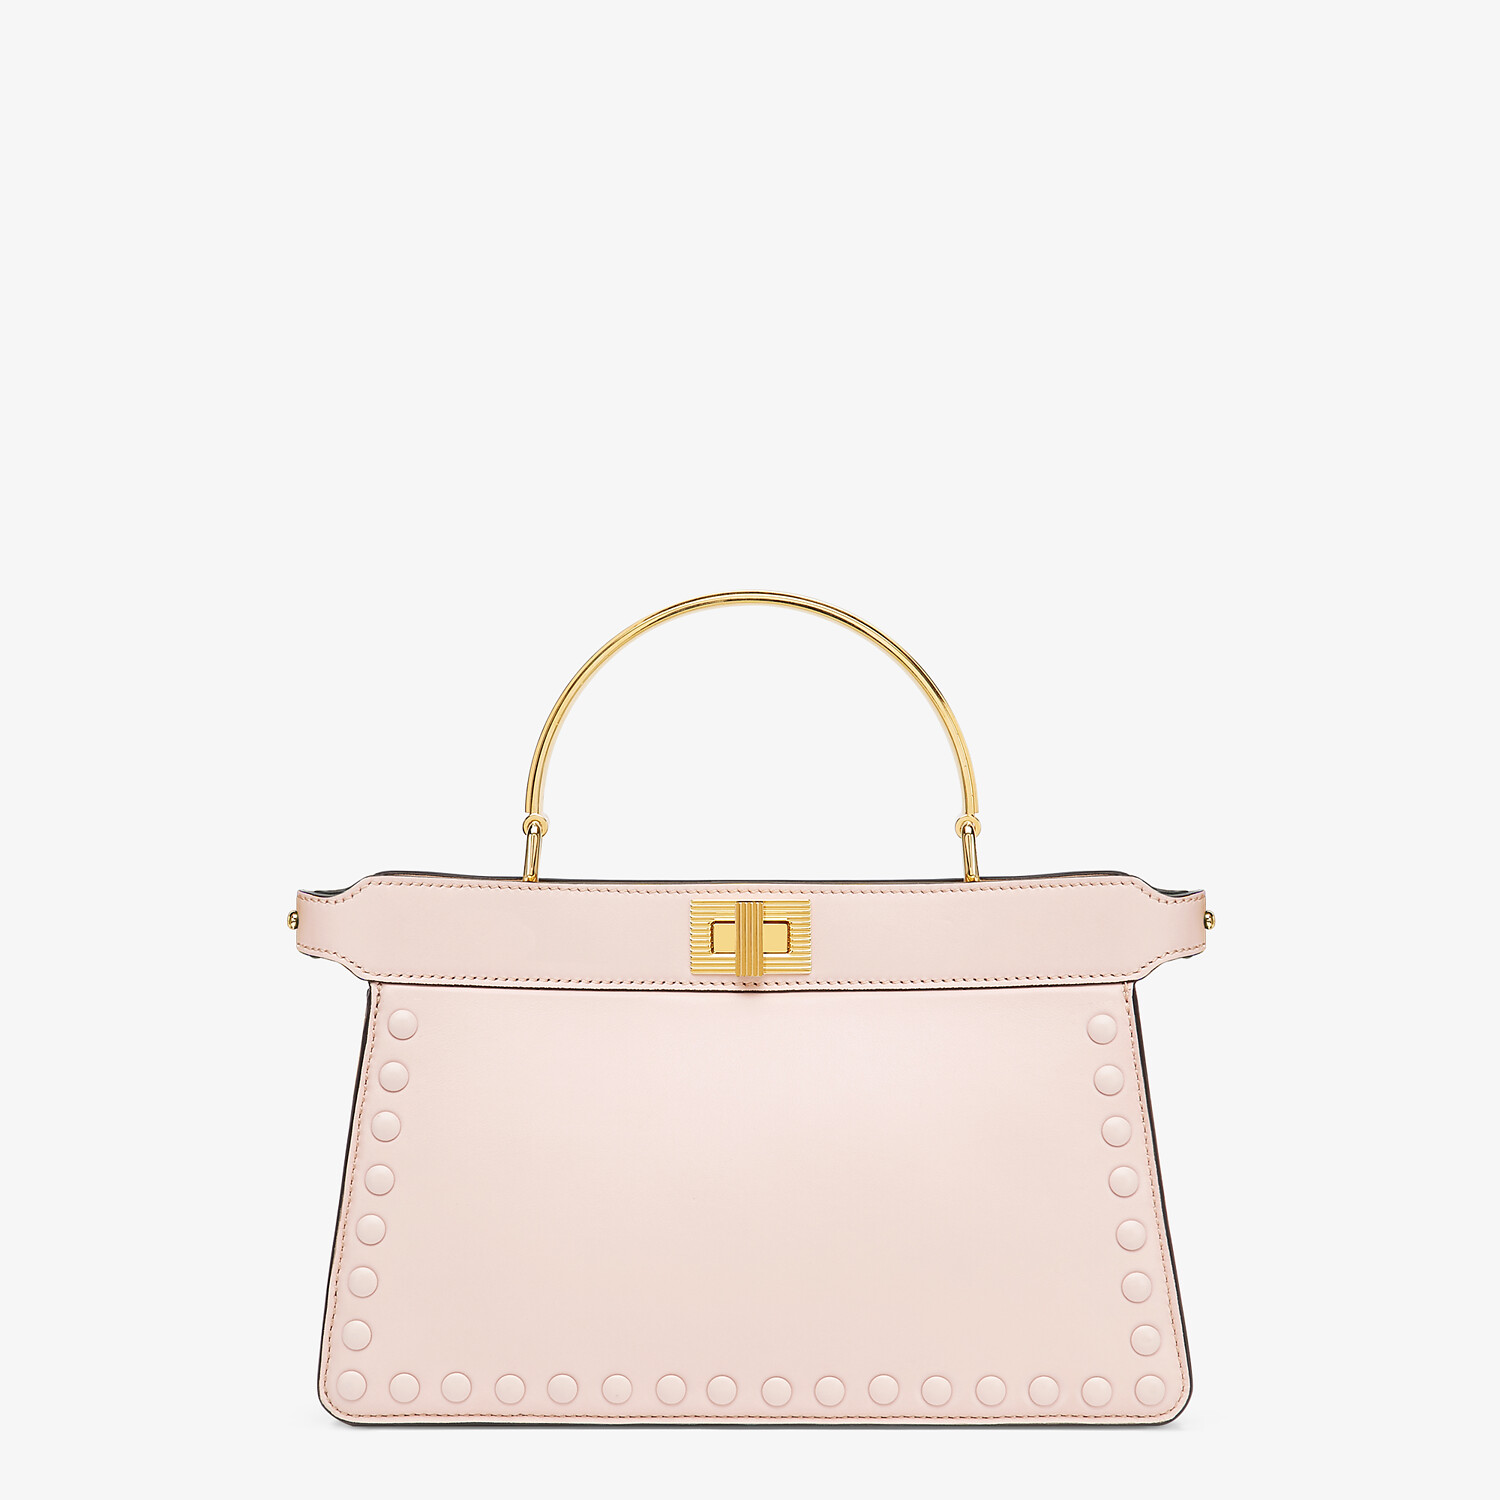 FENDI PEEKABOO ISEEU EAST-WEST - Pink leather bag - view 1 detail